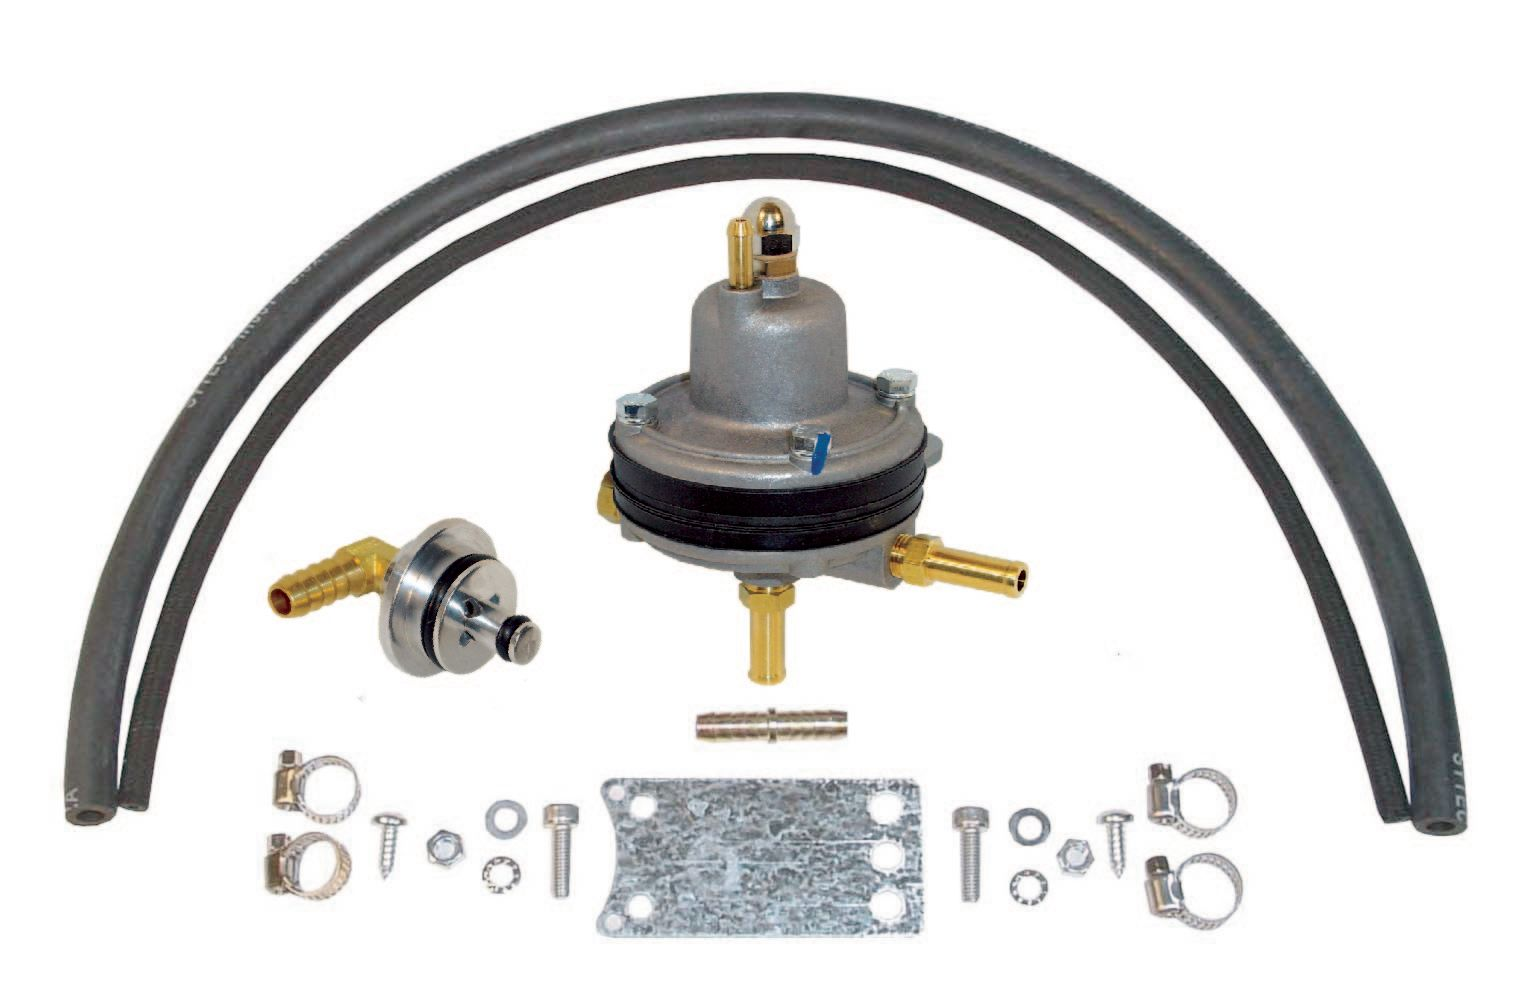 FSE Power Boost Valve Peugeot 405 1.6 95 VK-384-1XSI-H